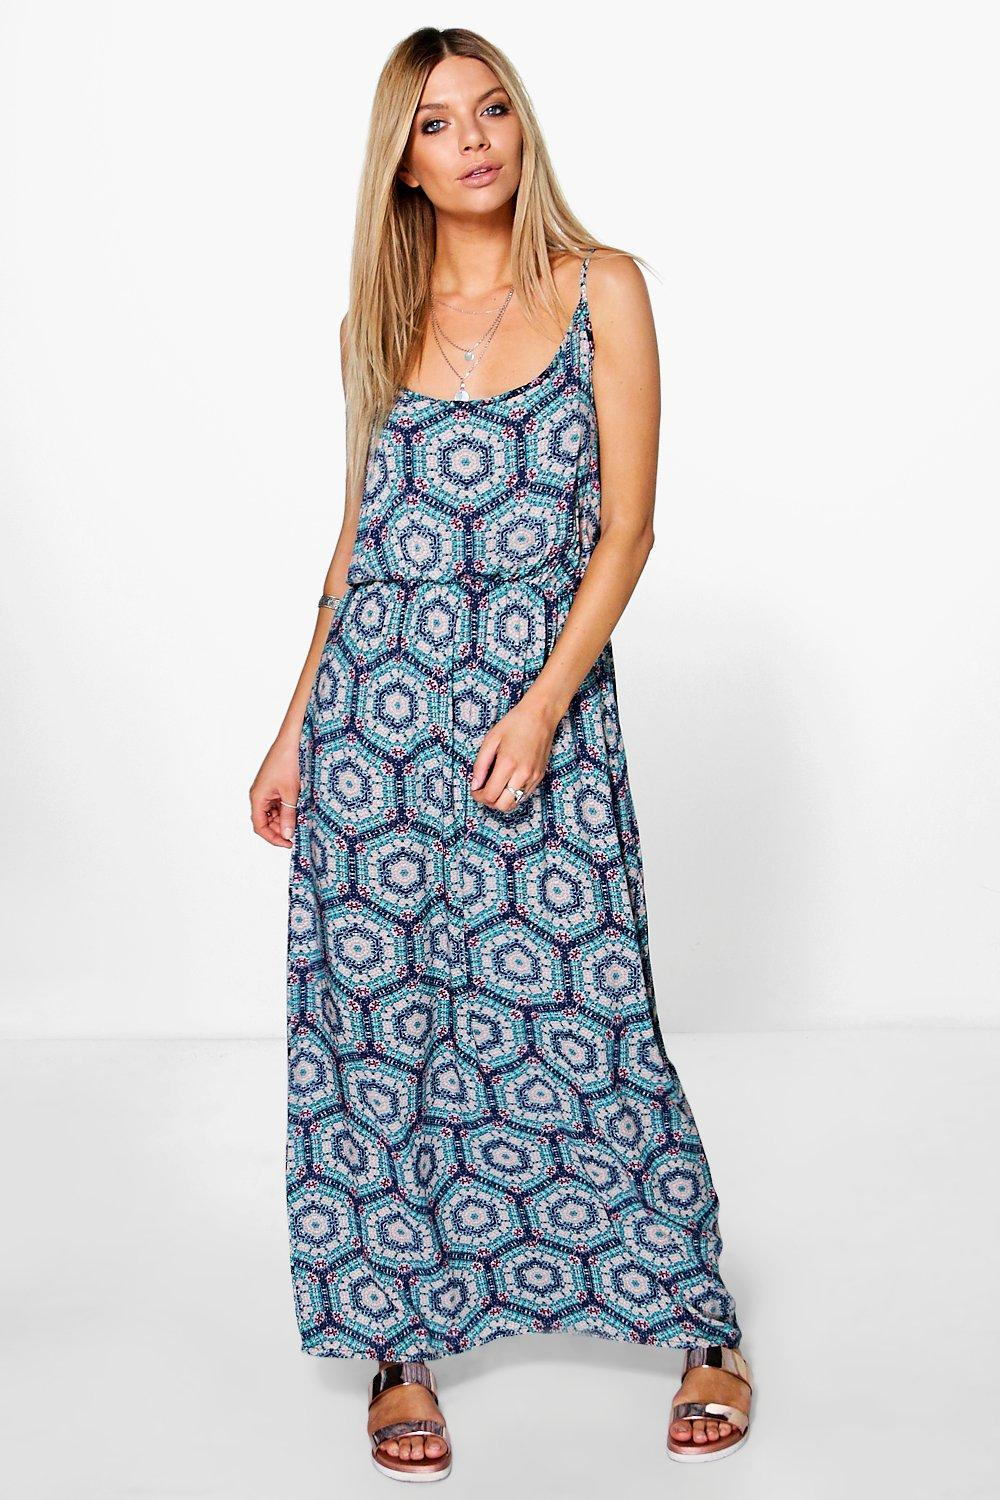 Woven Printed Maxi Dress Multi - sleeve style: sleeveless; style: maxi dress; length: ankle length; predominant colour: diva blue; secondary colour: pale blue; occasions: casual; fit: body skimming; neckline: scoop; fibres: polyester/polyamide - 100%; sleeve length: sleeveless; pattern type: fabric; pattern: patterned/print; texture group: other - light to midweight; season: s/s 2016; wardrobe: highlight